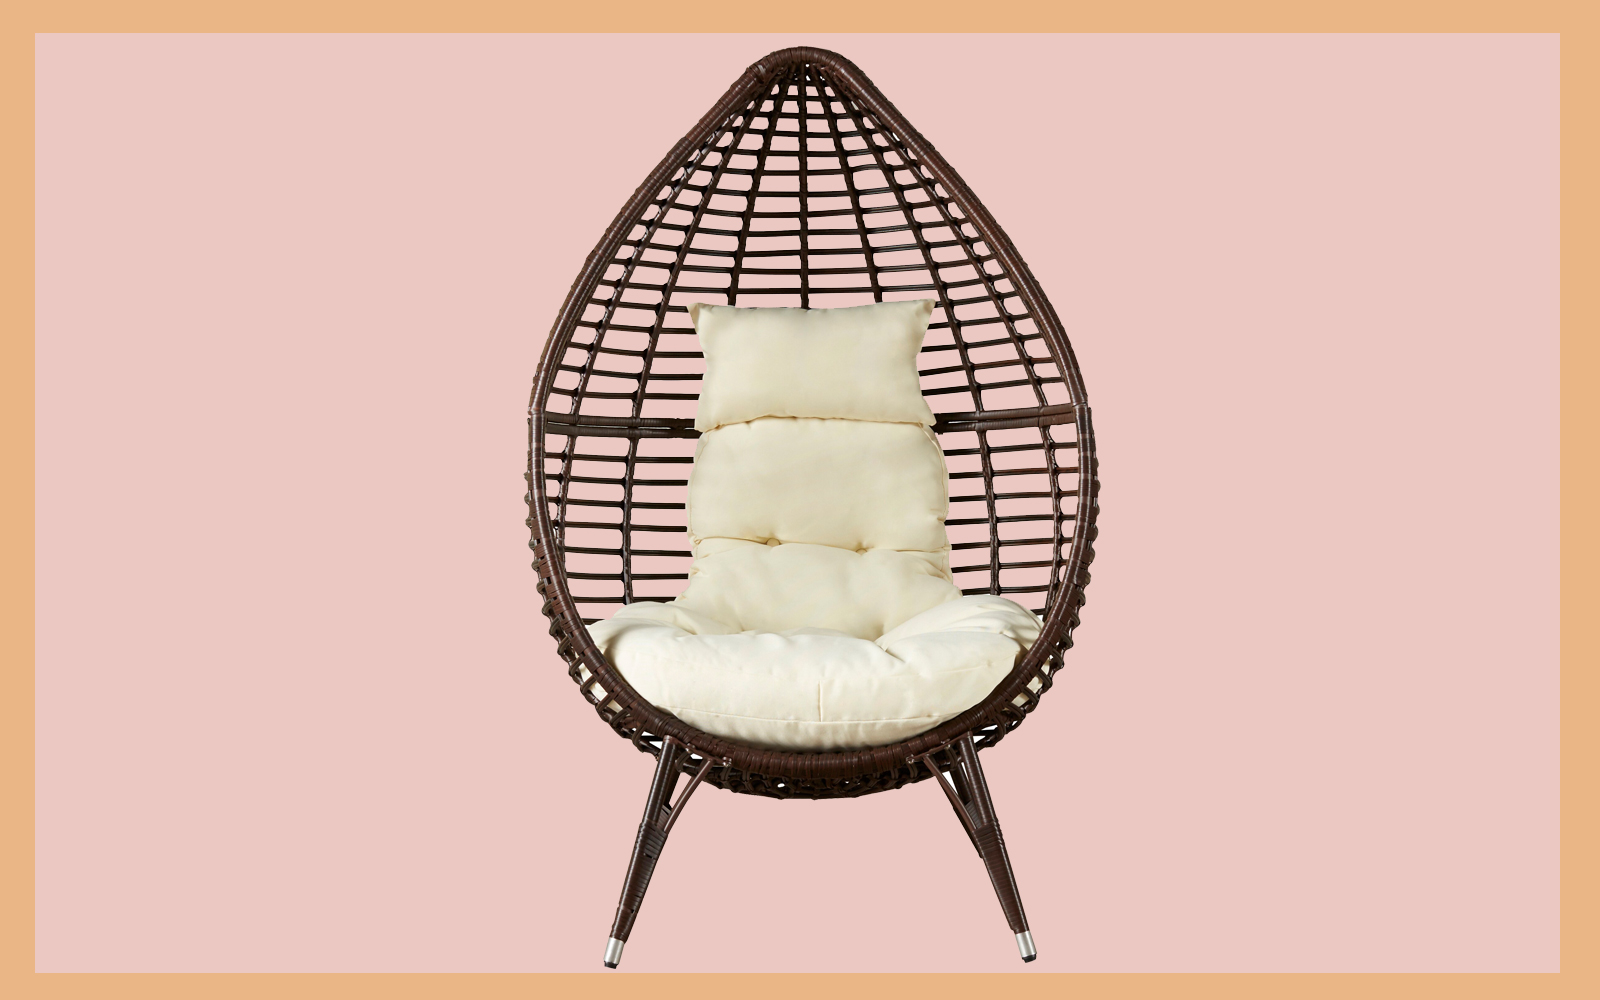 Relaxing Chairs Lifestyle Pictures